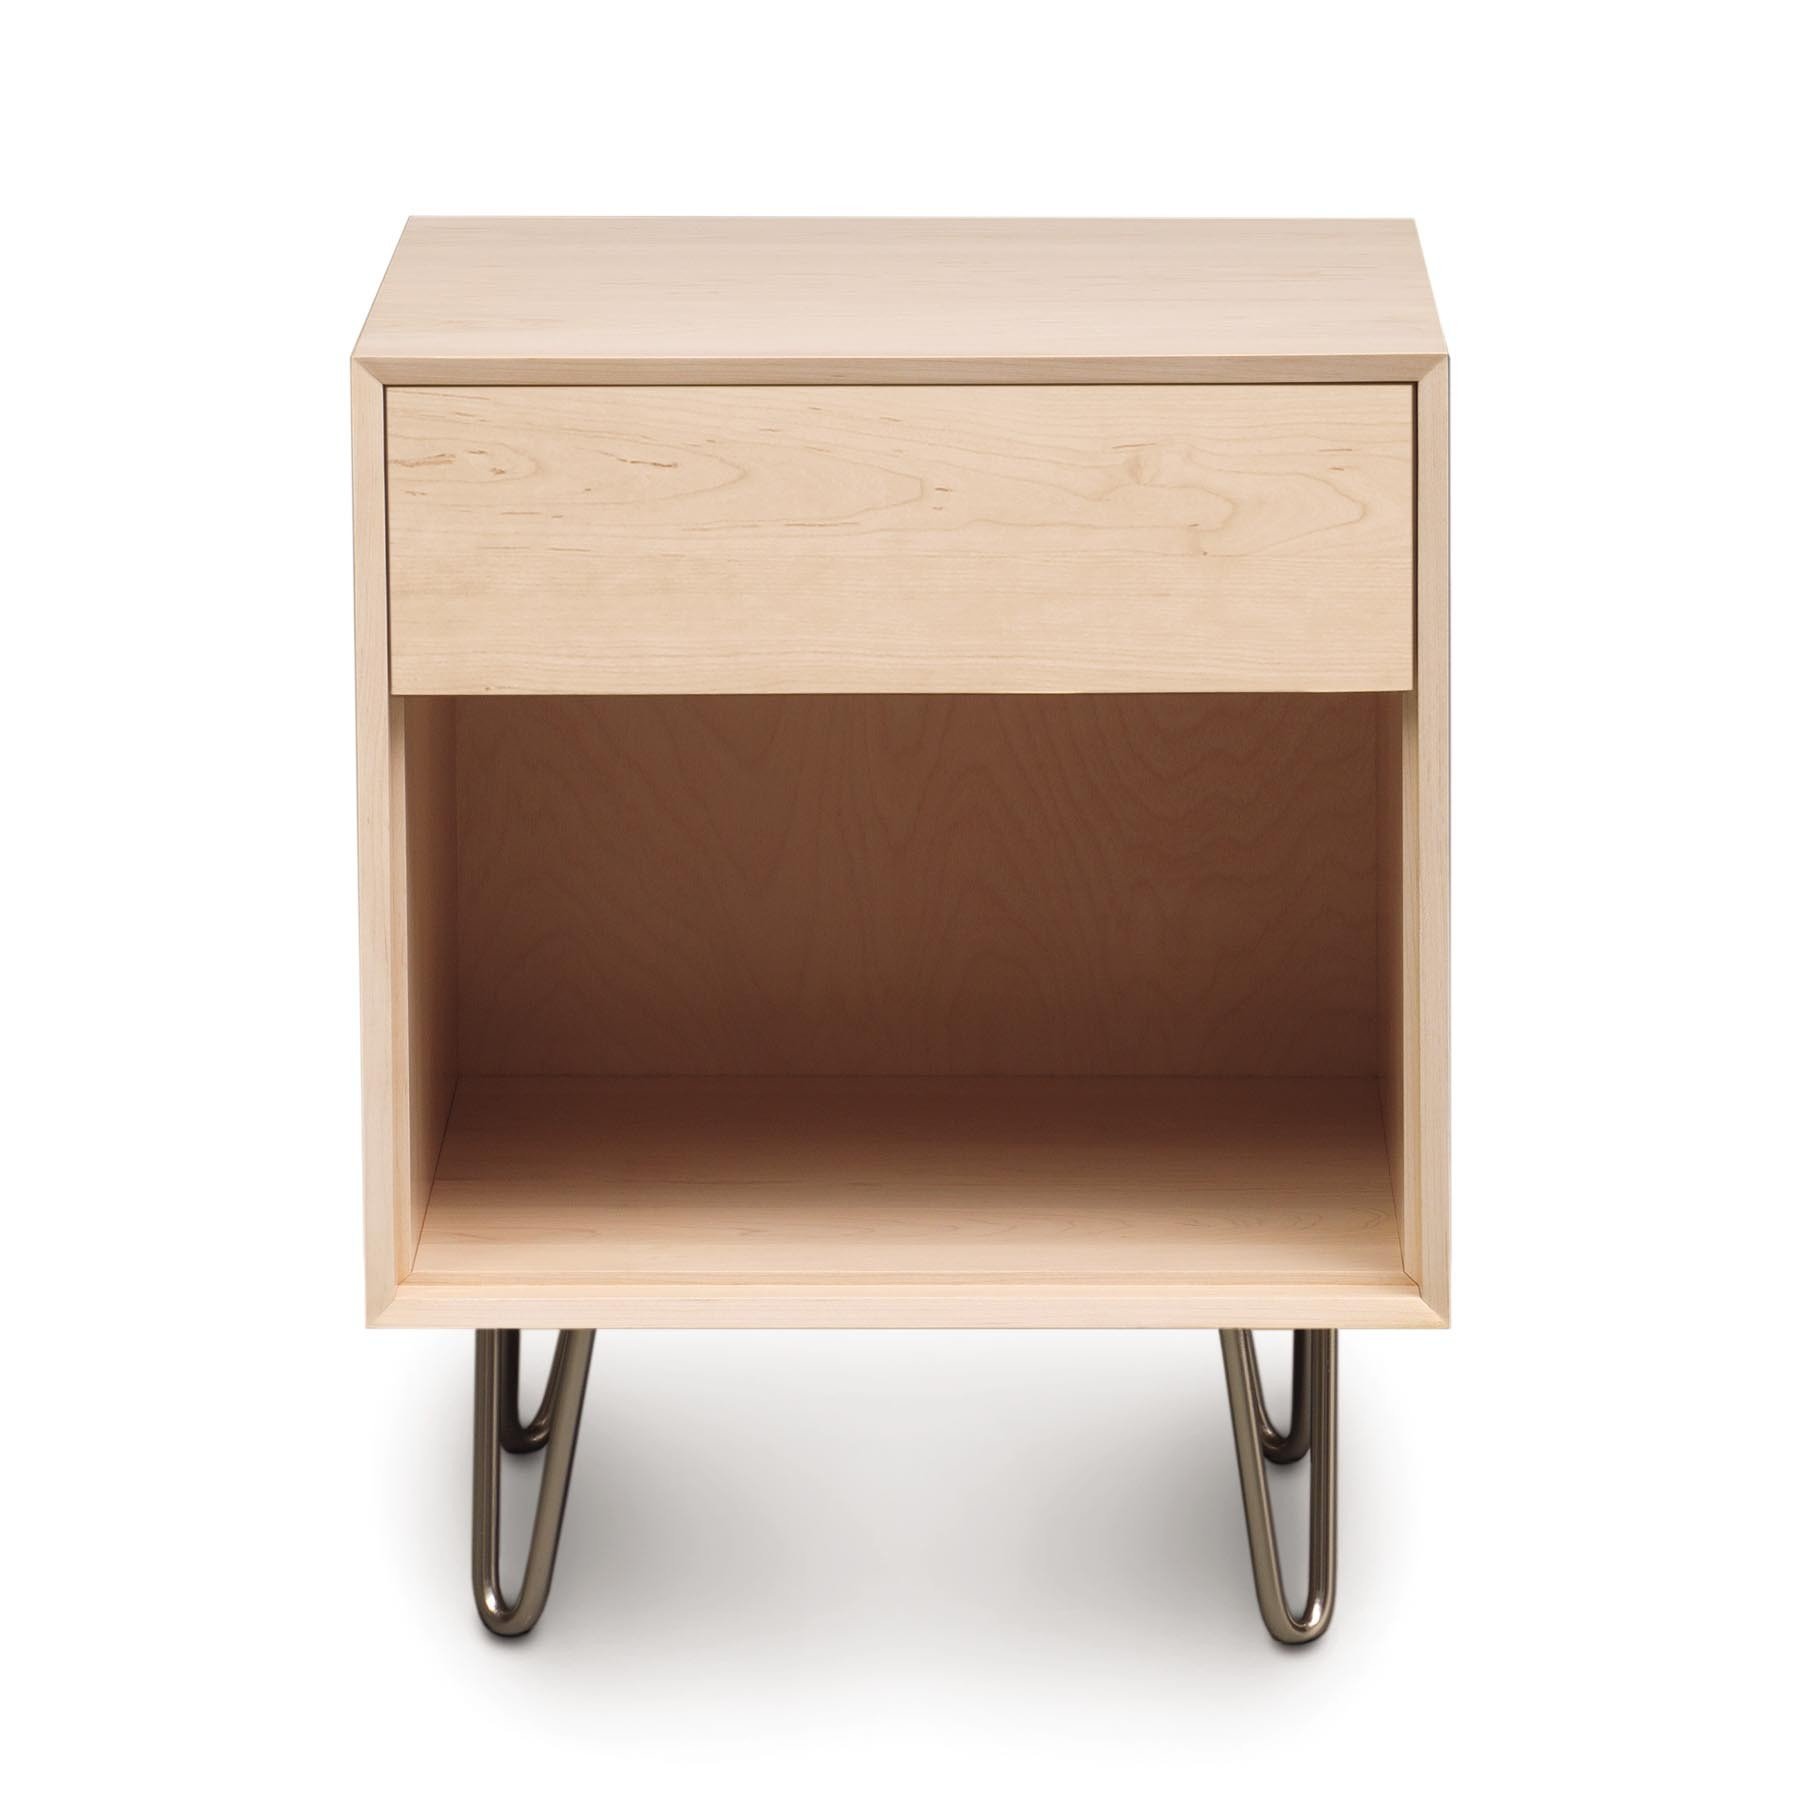 Canvas 1 Drawer With Push To Open Drawers And Metal Legs